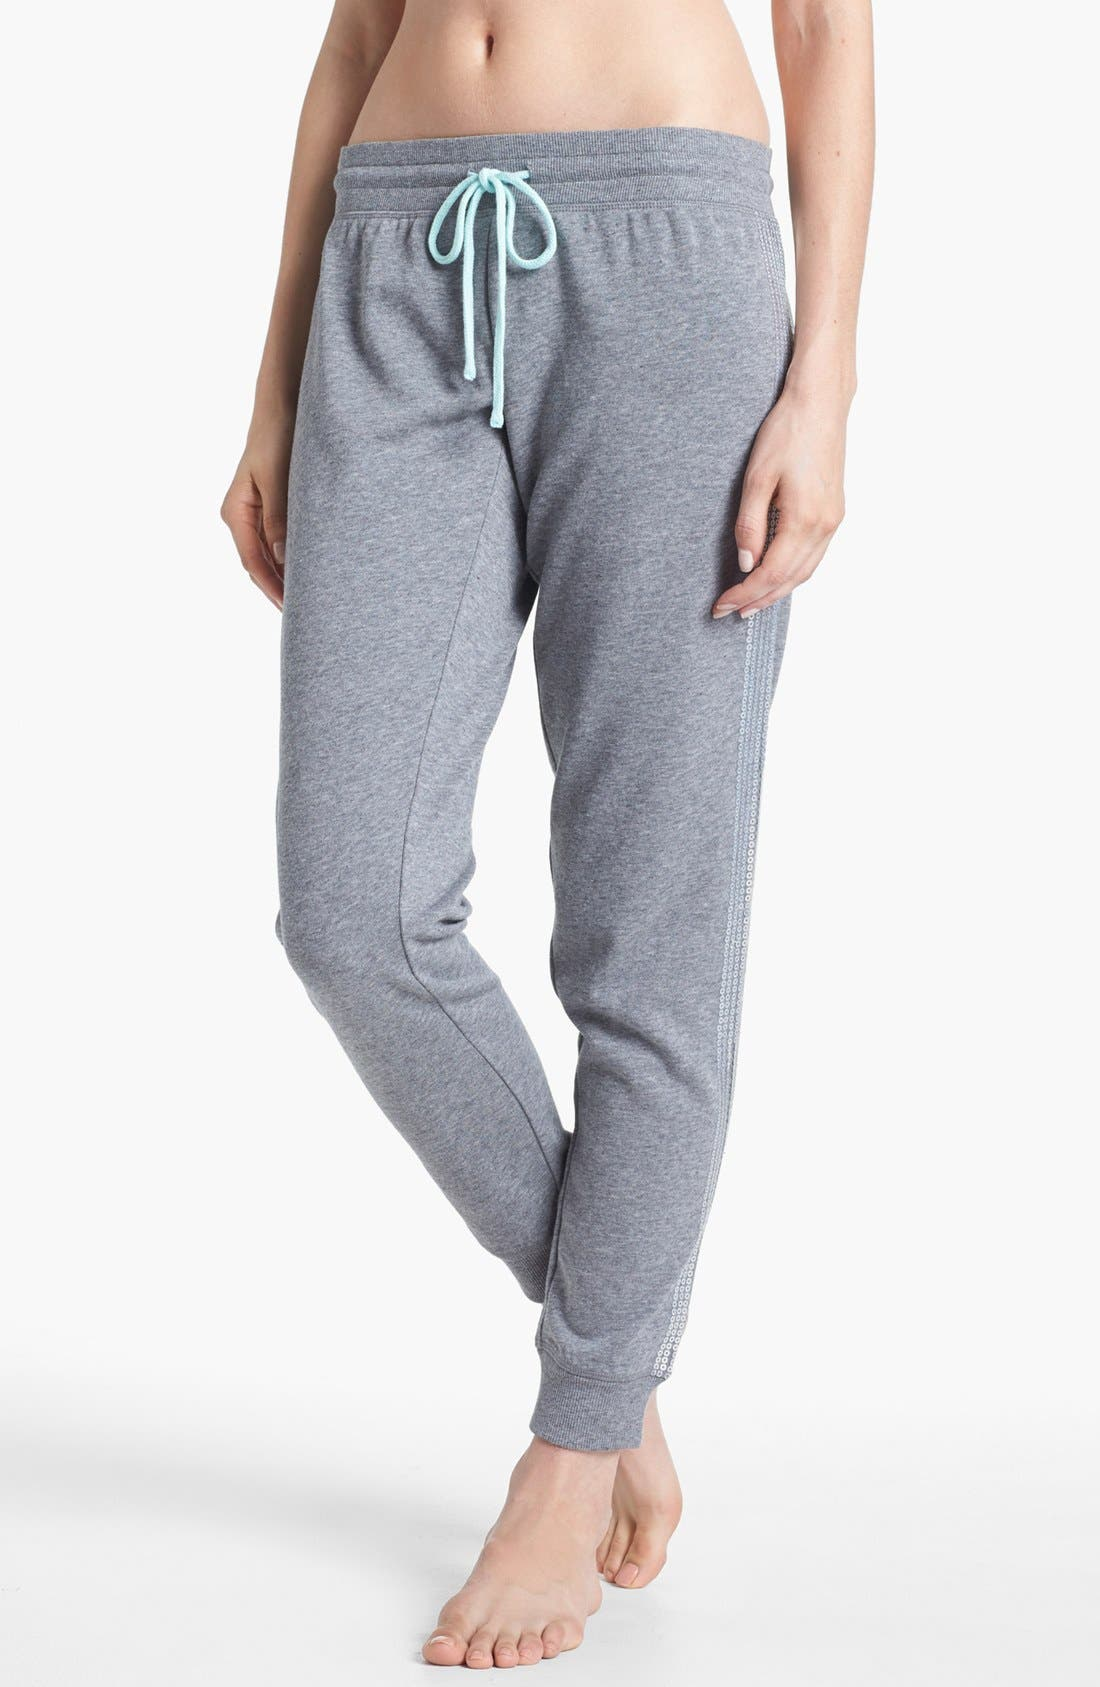 Main Image - COZY ZOE 'Cool Kitty' Sweatpants